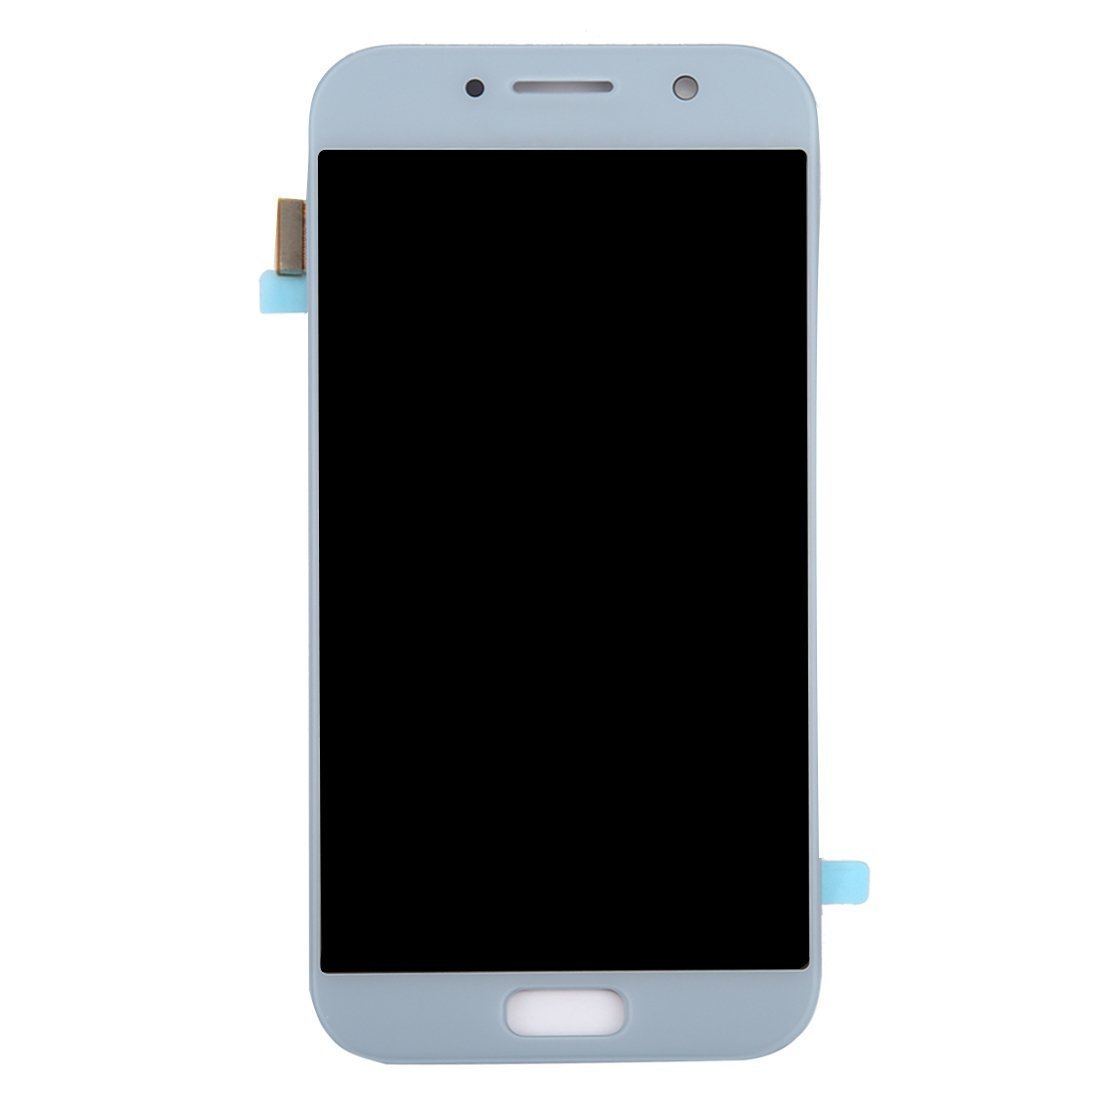 Samsung A6 Plus Screen Replacement - Black